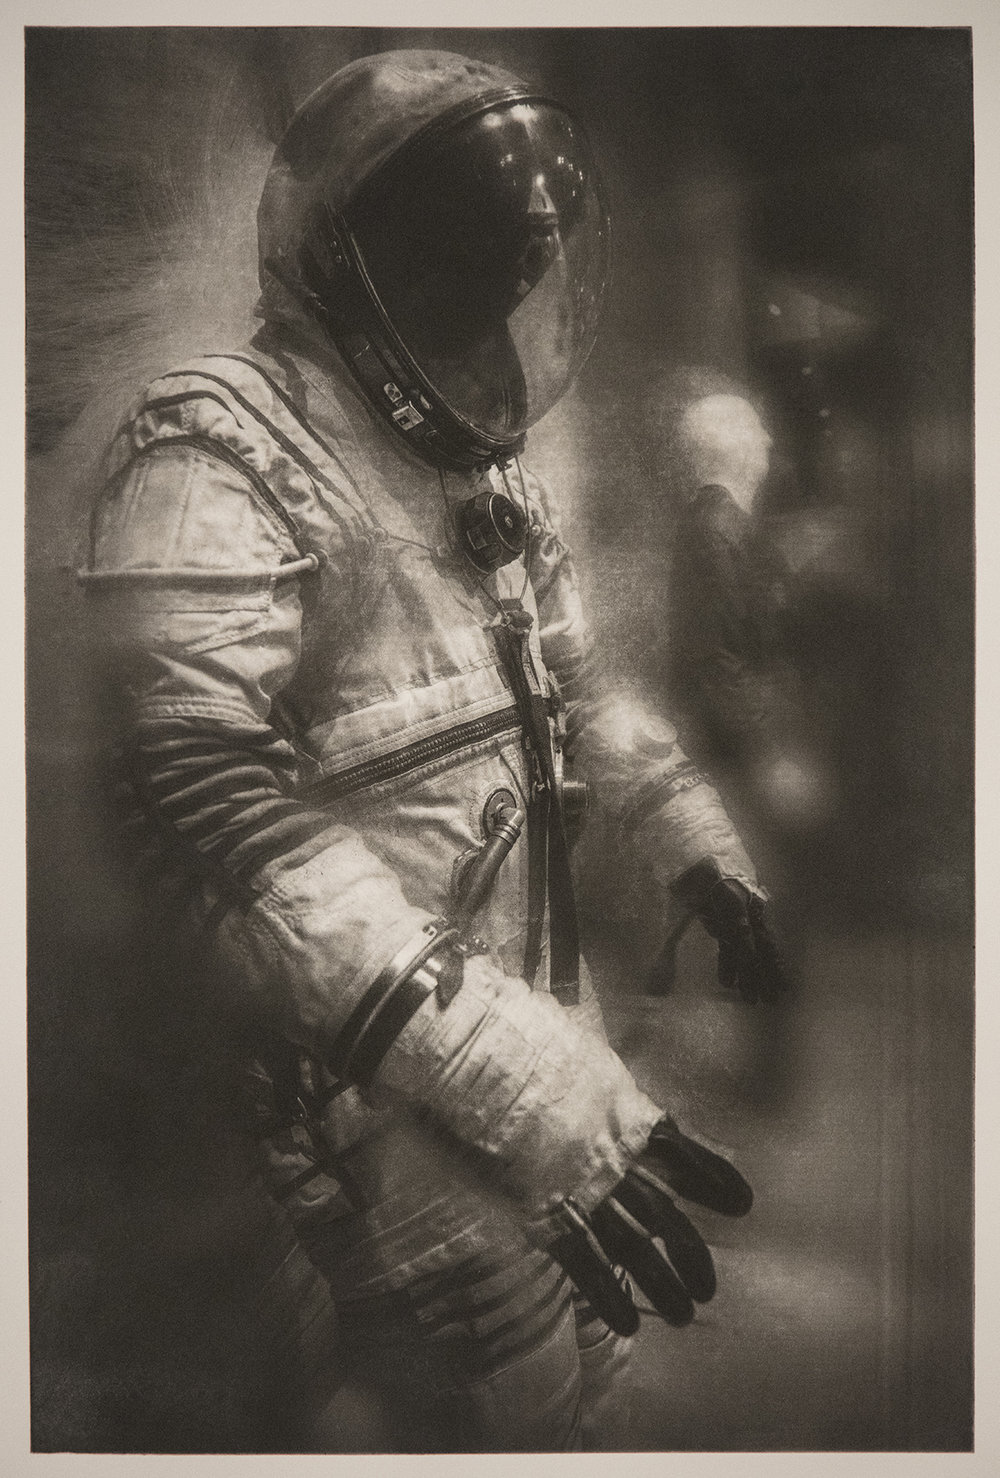 SOKOL Escape Suit for the Soviet Soyuz Missions